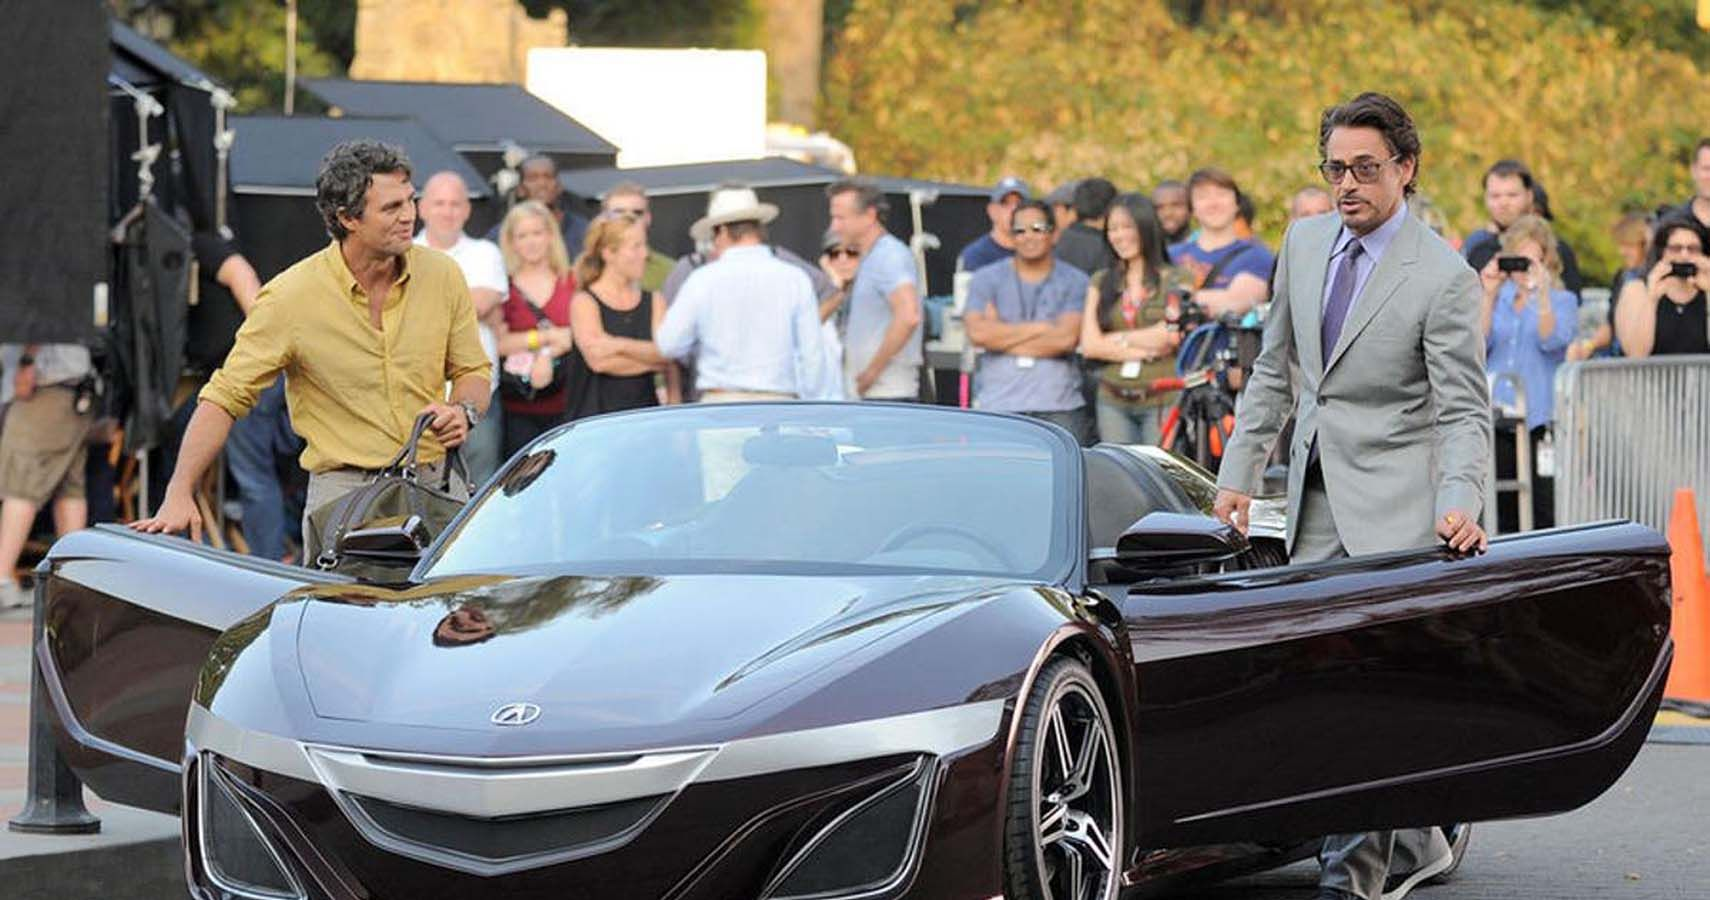 Here's What We Know About Robert Downey Junior's Insane Custom Acura